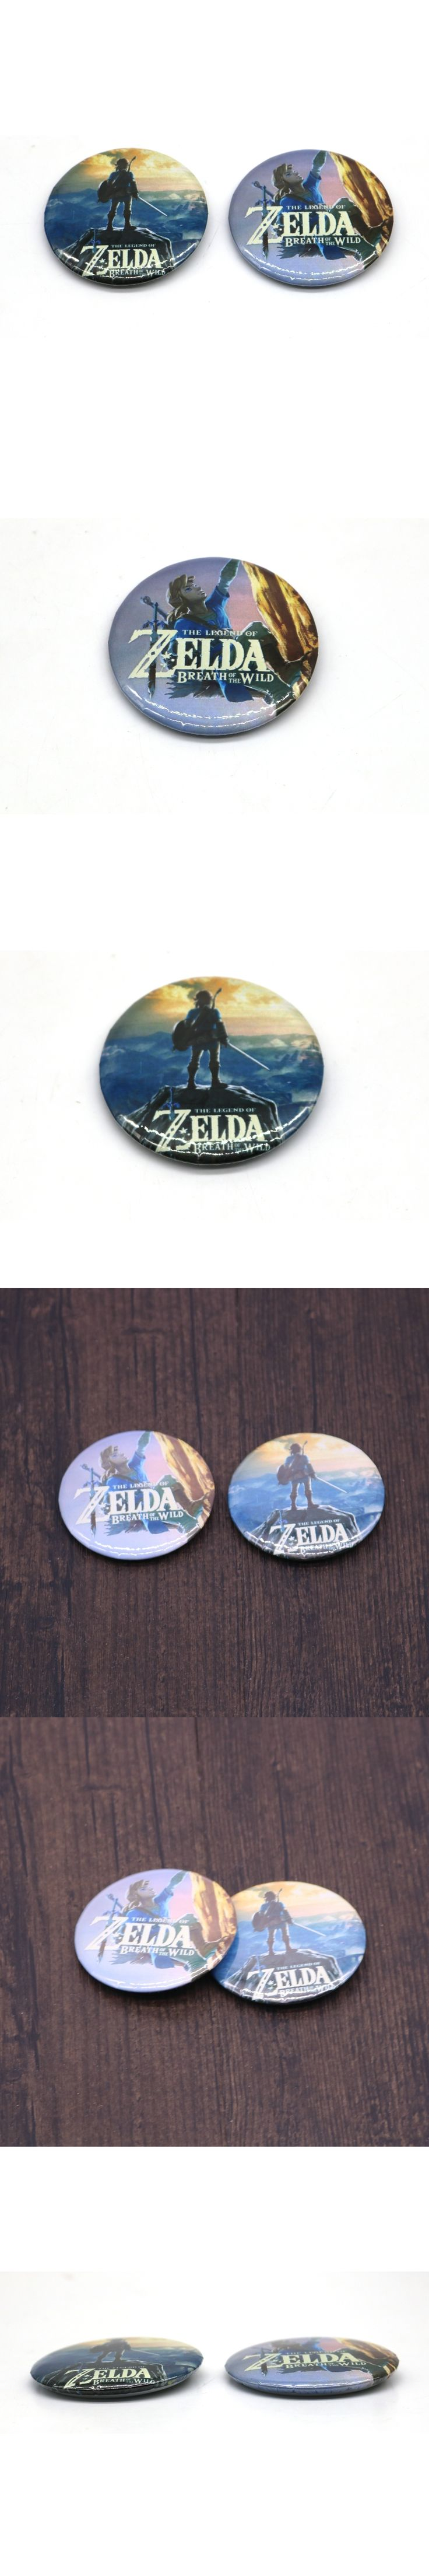 New Game The Legend of Zelda: Breath of the Wild Logo Pin Brooches School Bag Badge Cosplay Collection Great Gift High Quality